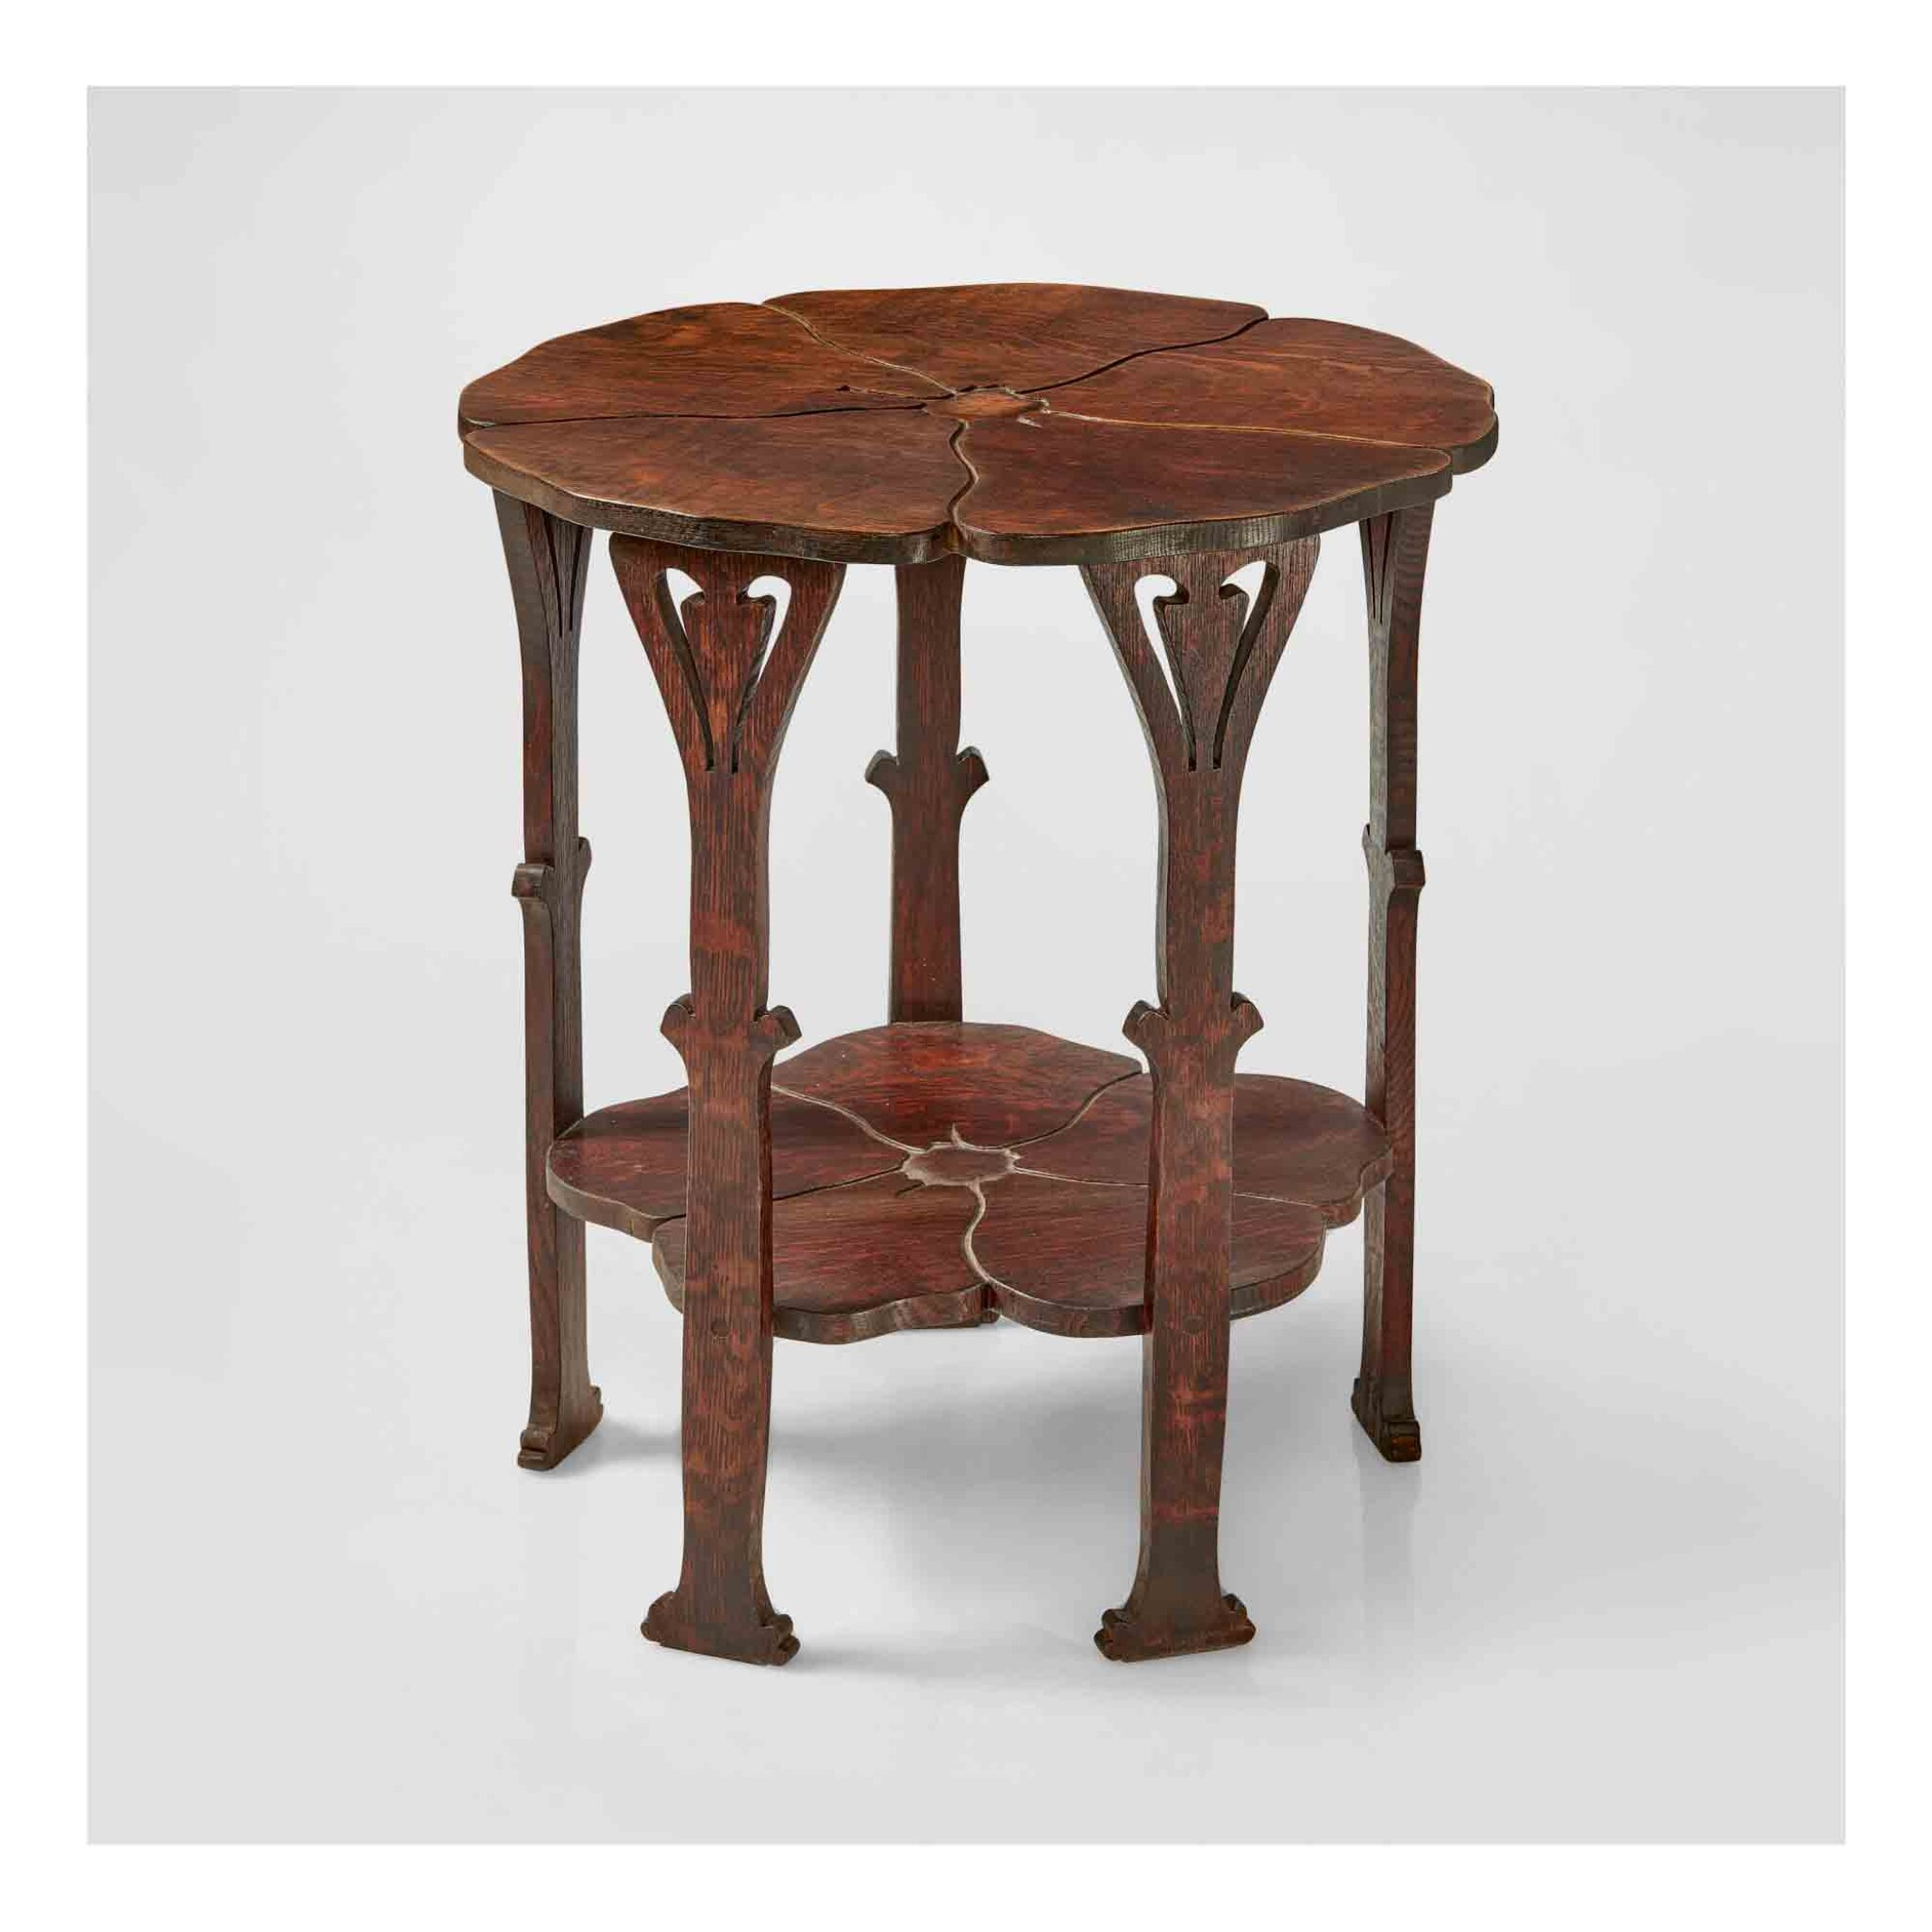 """View 1 of Lot 324. A Rare """"Poppy"""" Table, Model No. 26."""